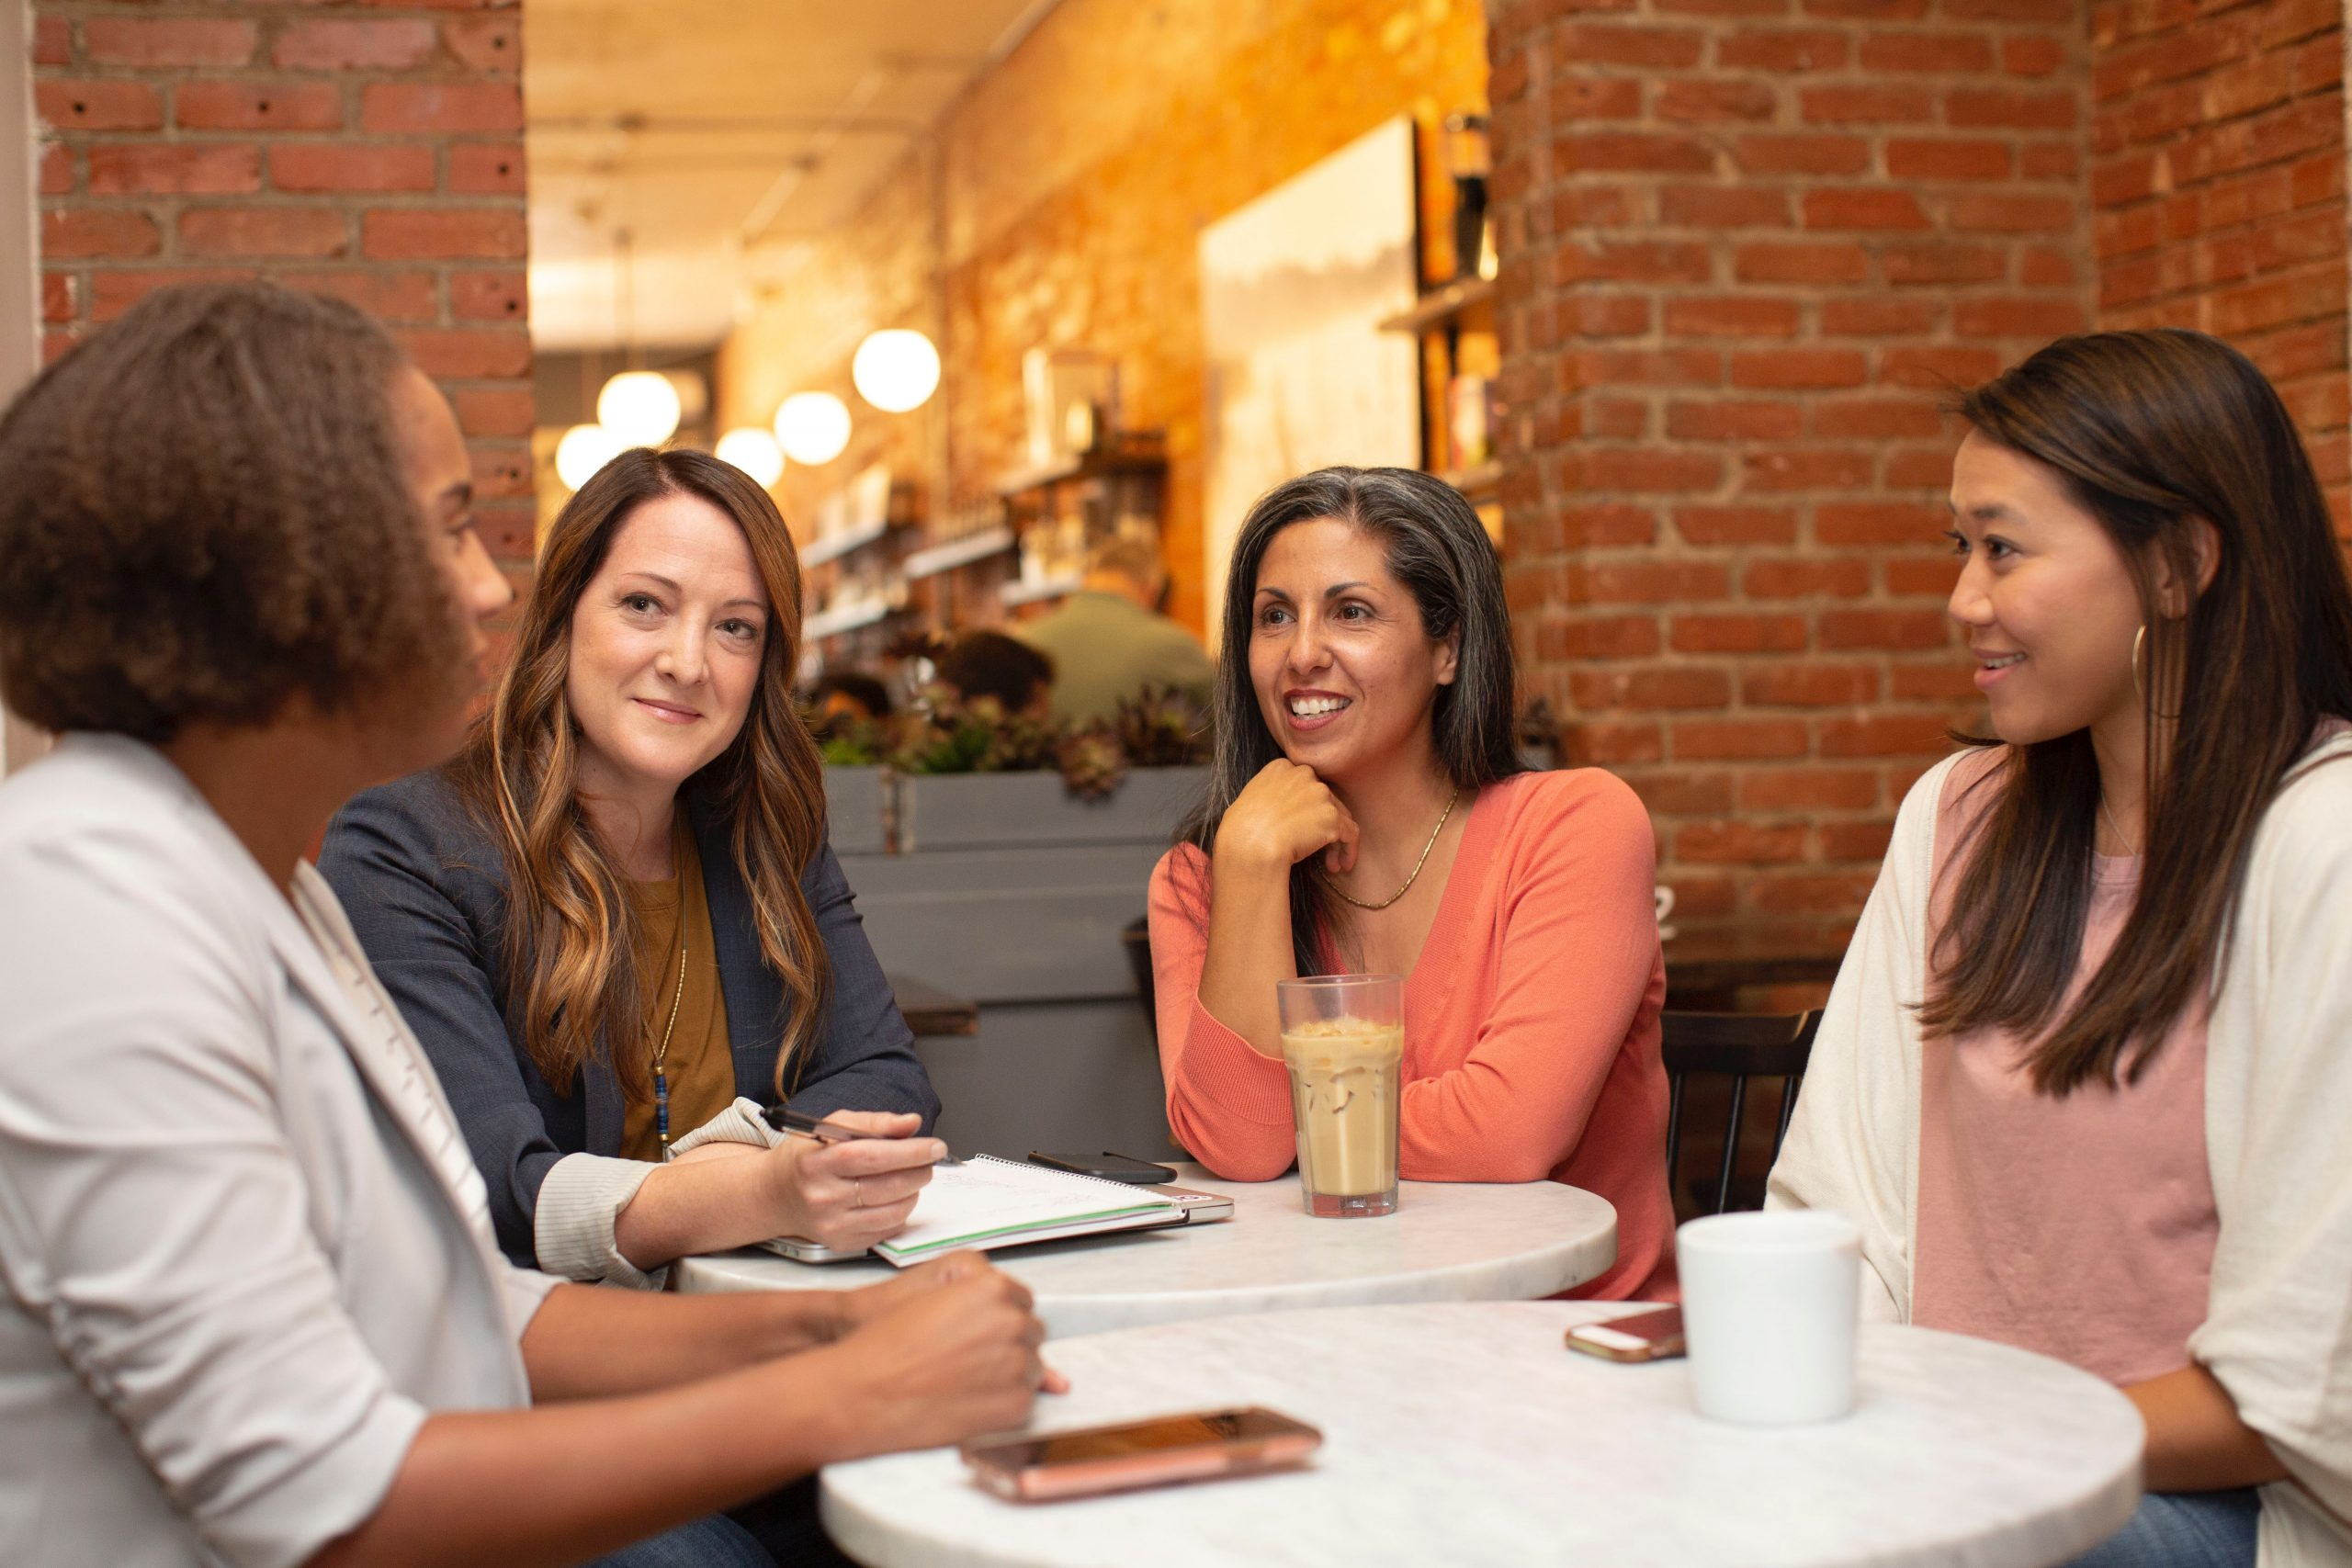 Group of women sitting at a table and chatting